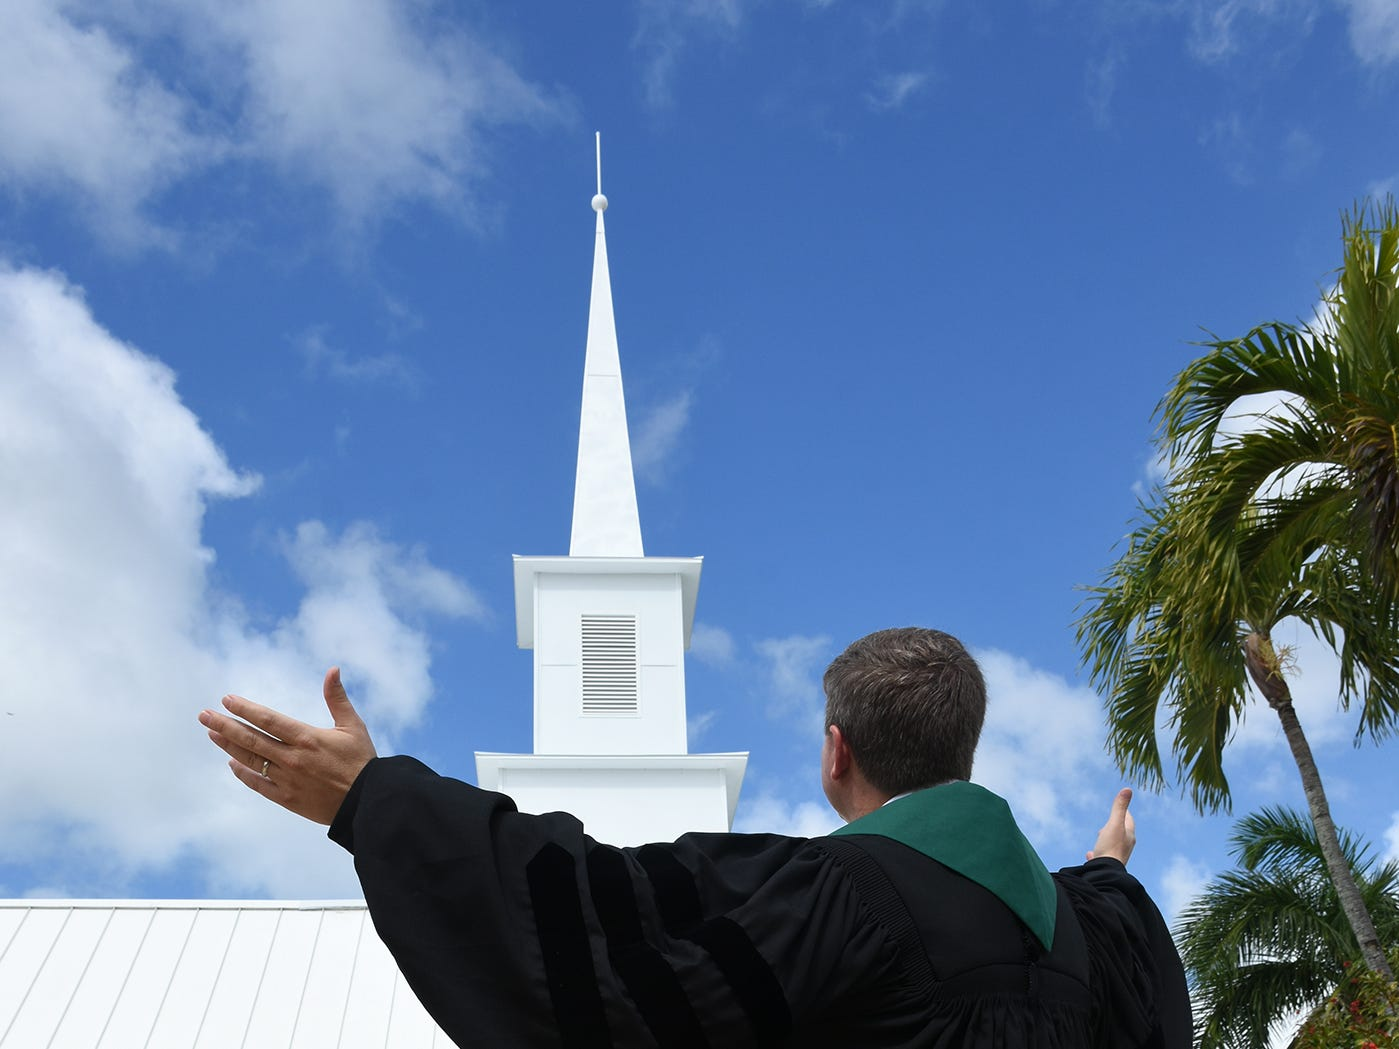 Pastor Mark Williams with the new steeple. United Church of Marco Island held a ceremony Sunday dedicating their newly erected steeple, which was damaged during Hurricane Irma.